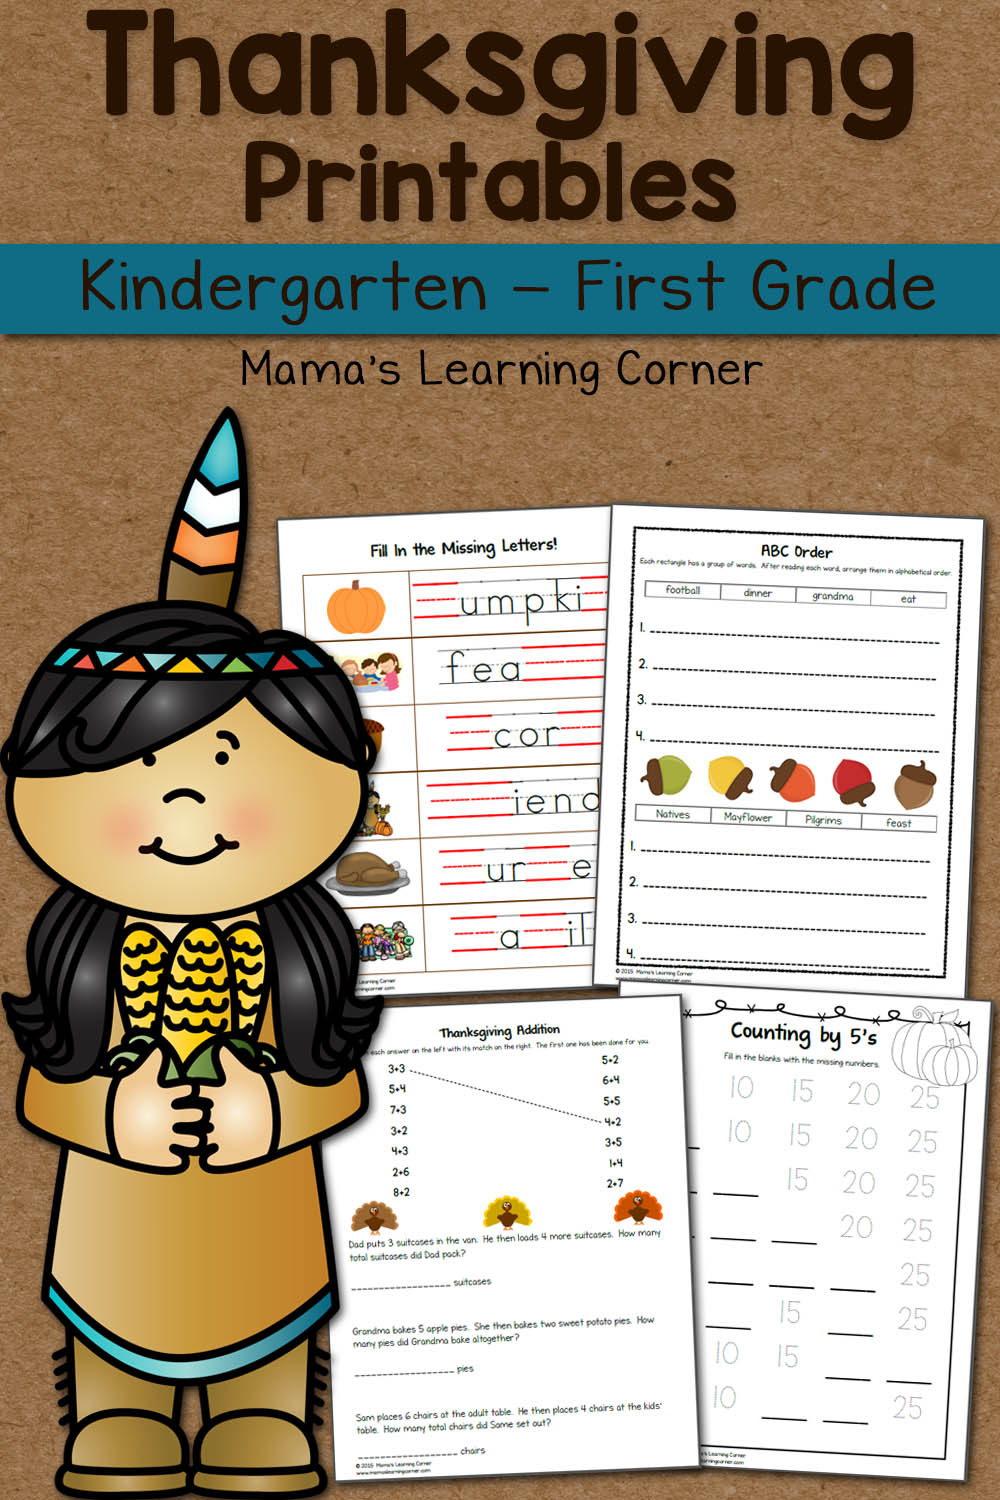 Thanksgiving Worksheet Packet For Kindergarten And First